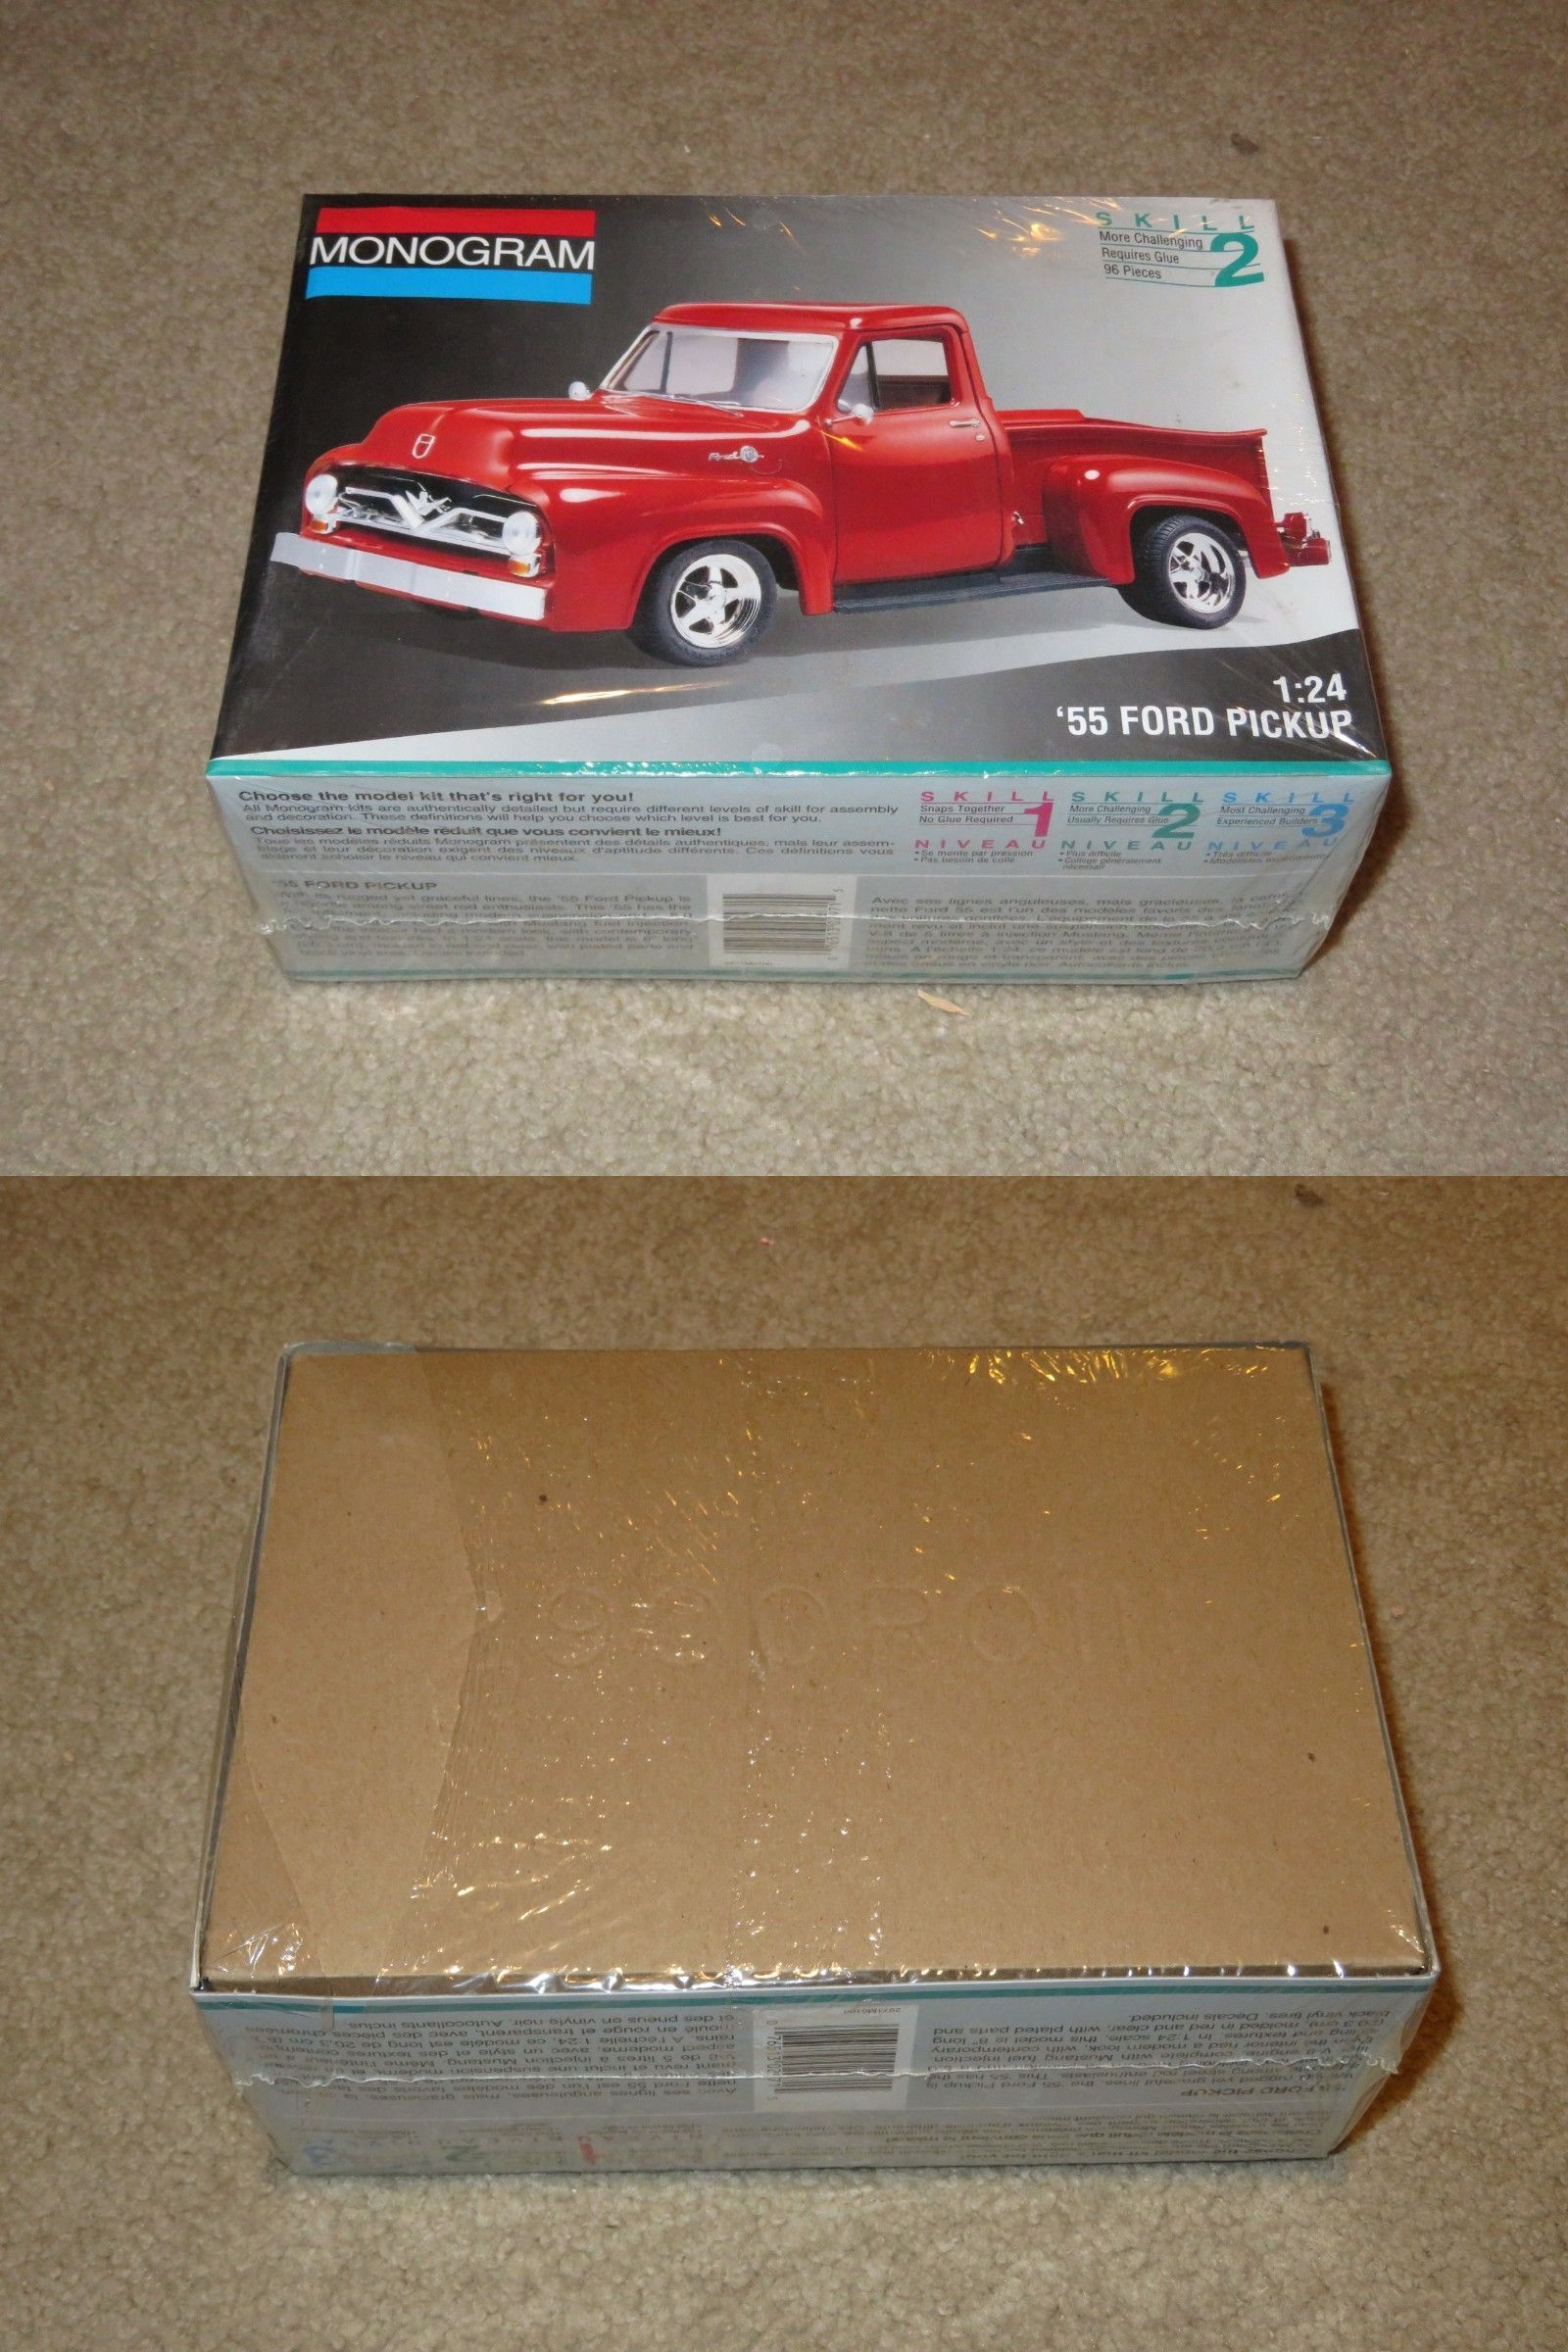 Other Automotive Models And Kits 1190 Monogram 1955 55 Ford Pickup Truck 1 24 Scale Model Kit Misb Sealed 19 Plastic Model Kits Ford Pickup Ford Pickup Trucks